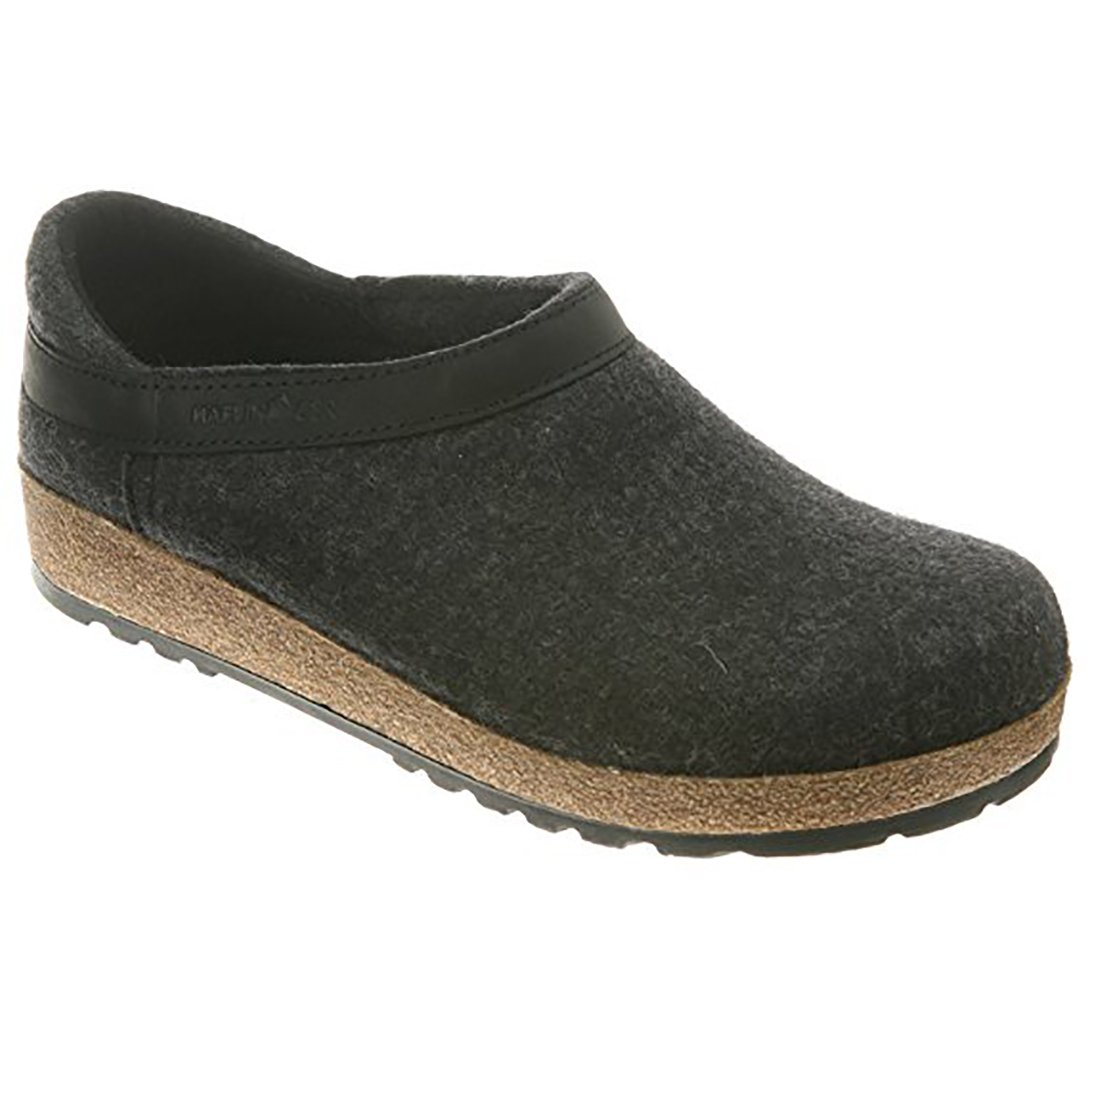 Haflinger GZH 714003 3 77 Graphit Slipper Size: EU 46 (US Mens 13); GZH44 Charcoal